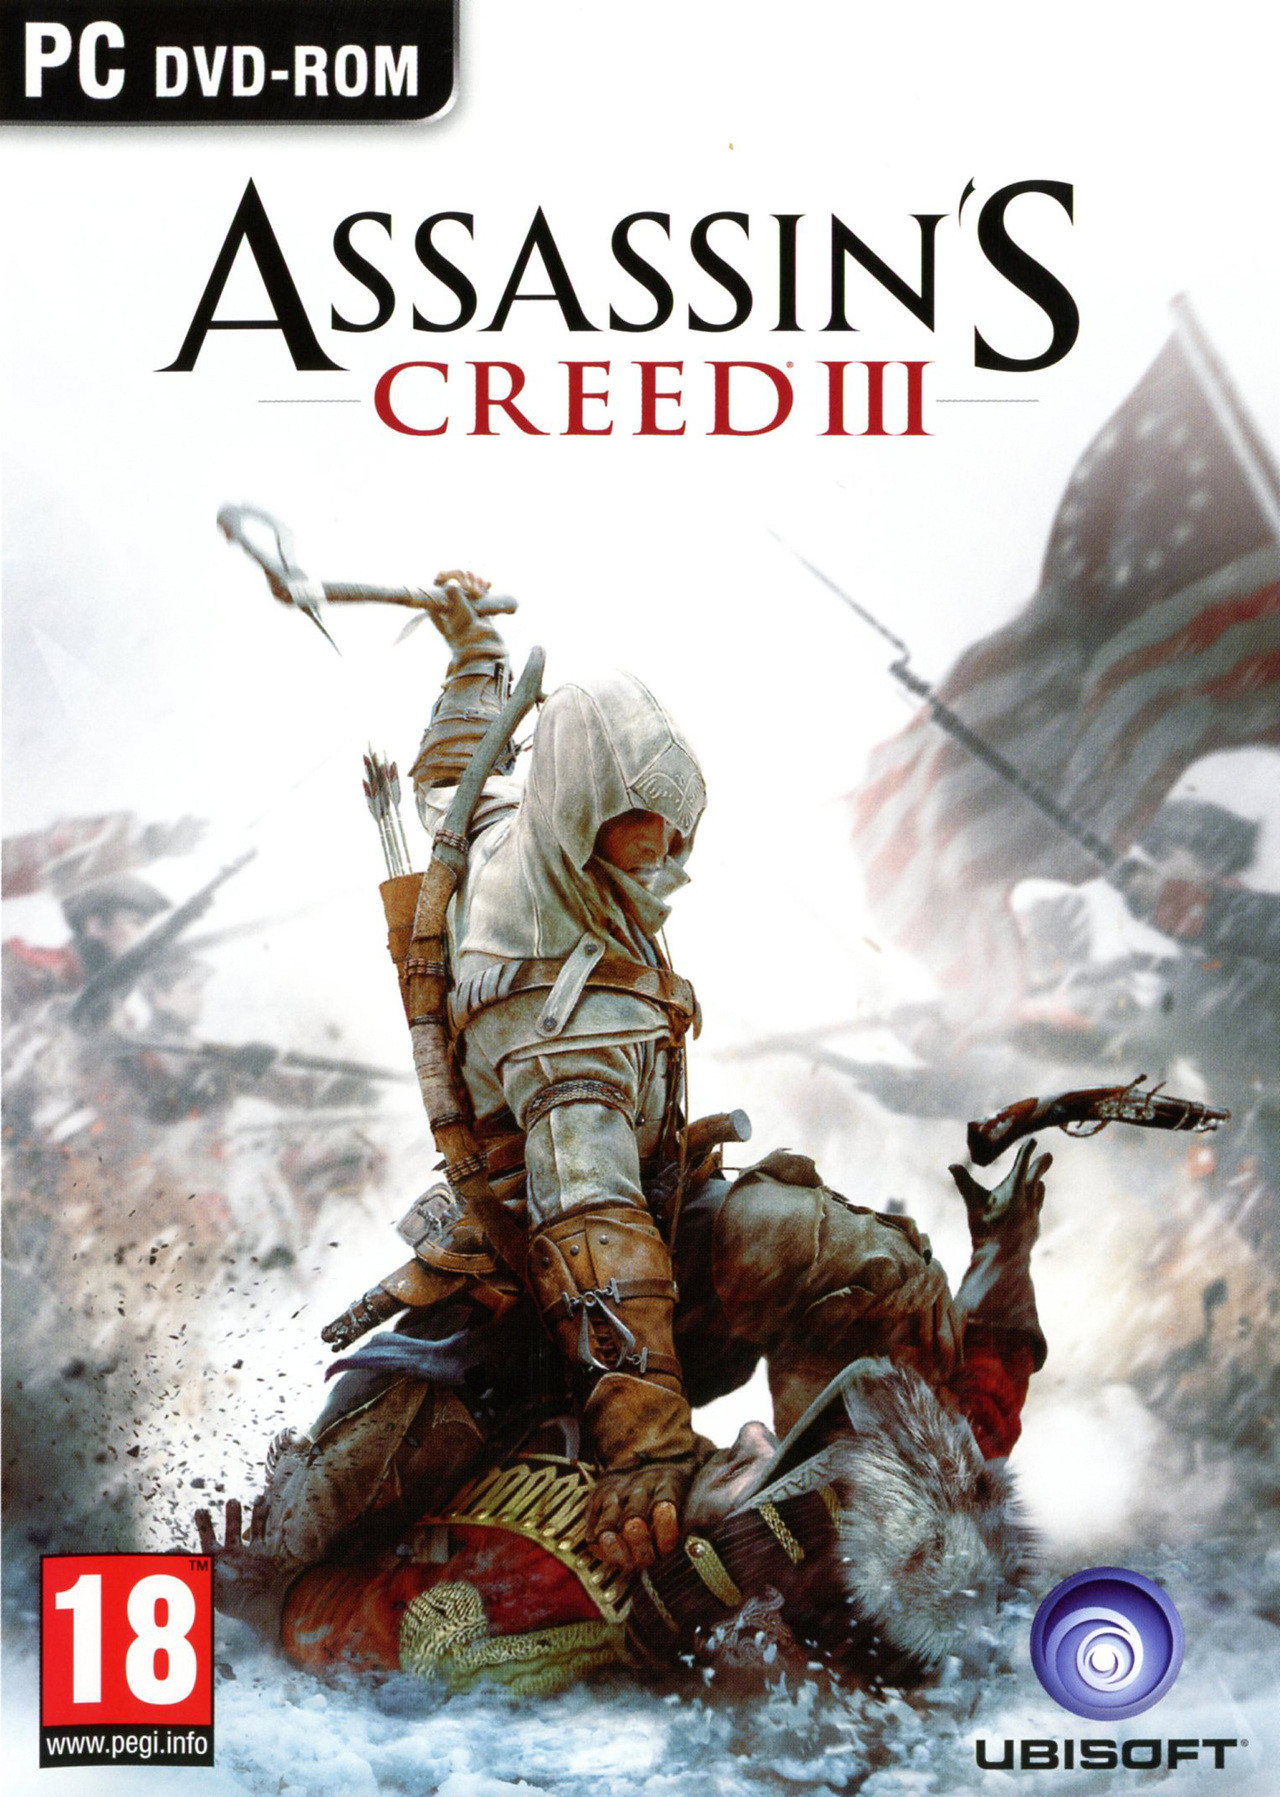 http://image.jeuxvideo.com/images/jaquettes/00042825/jaquette-assassin-s-creed-iii-pc-cover-avant-g-1353403494.jpg